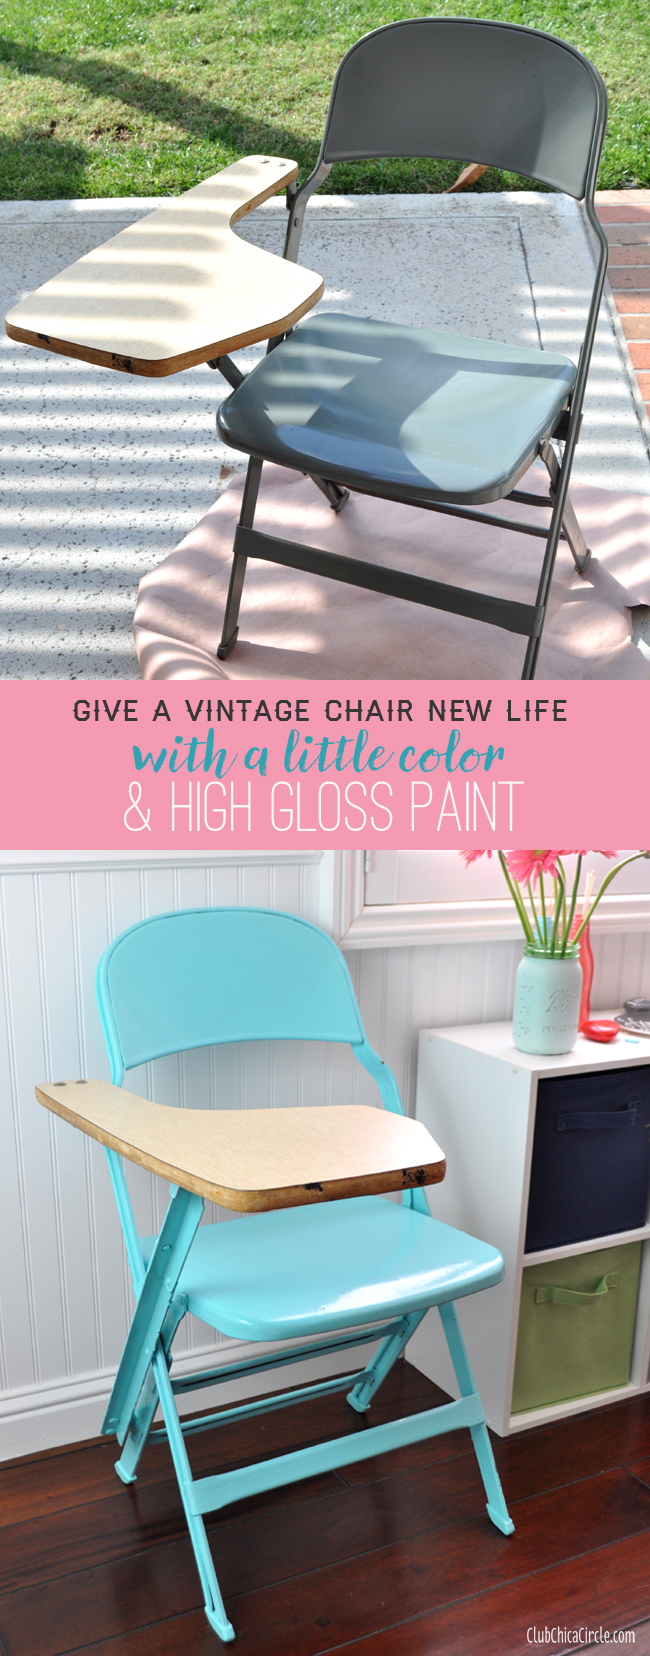 Give a vintage chair a new look with color and high gloss paint